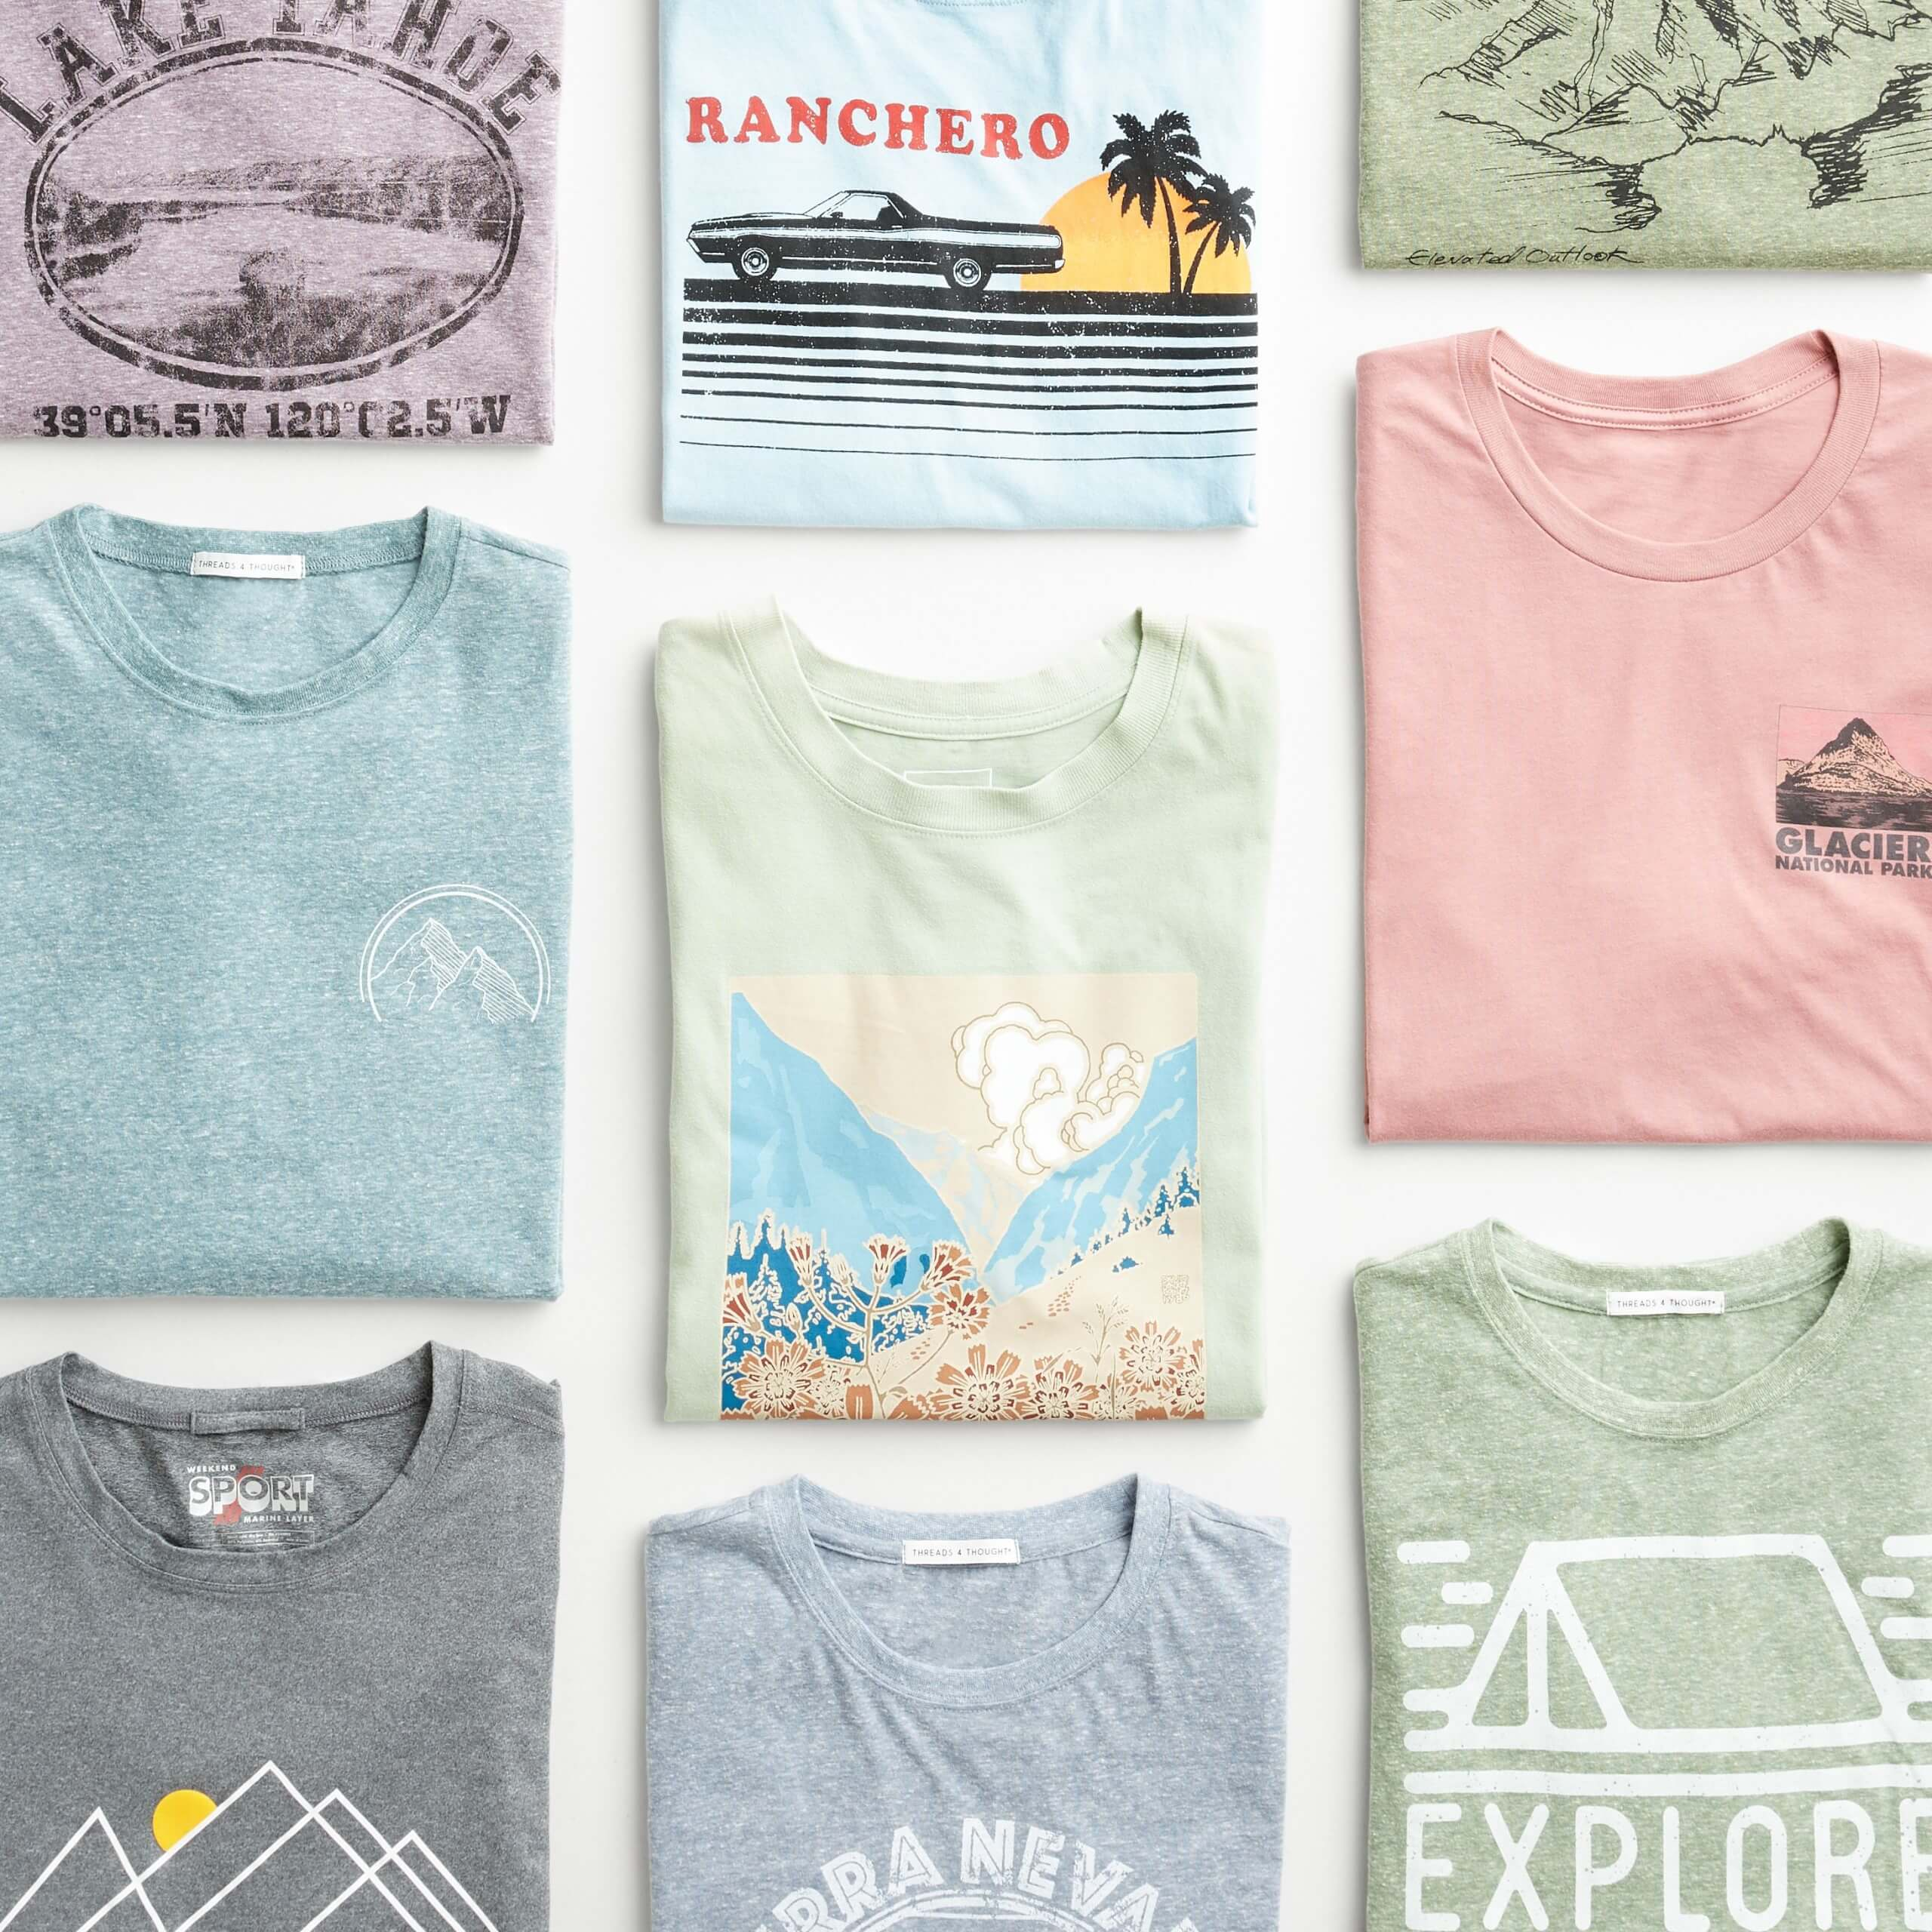 Stitch Fix Men's outfit laydown featuring graphic t-shirts in light purple, light green, light pink and light blue styles.